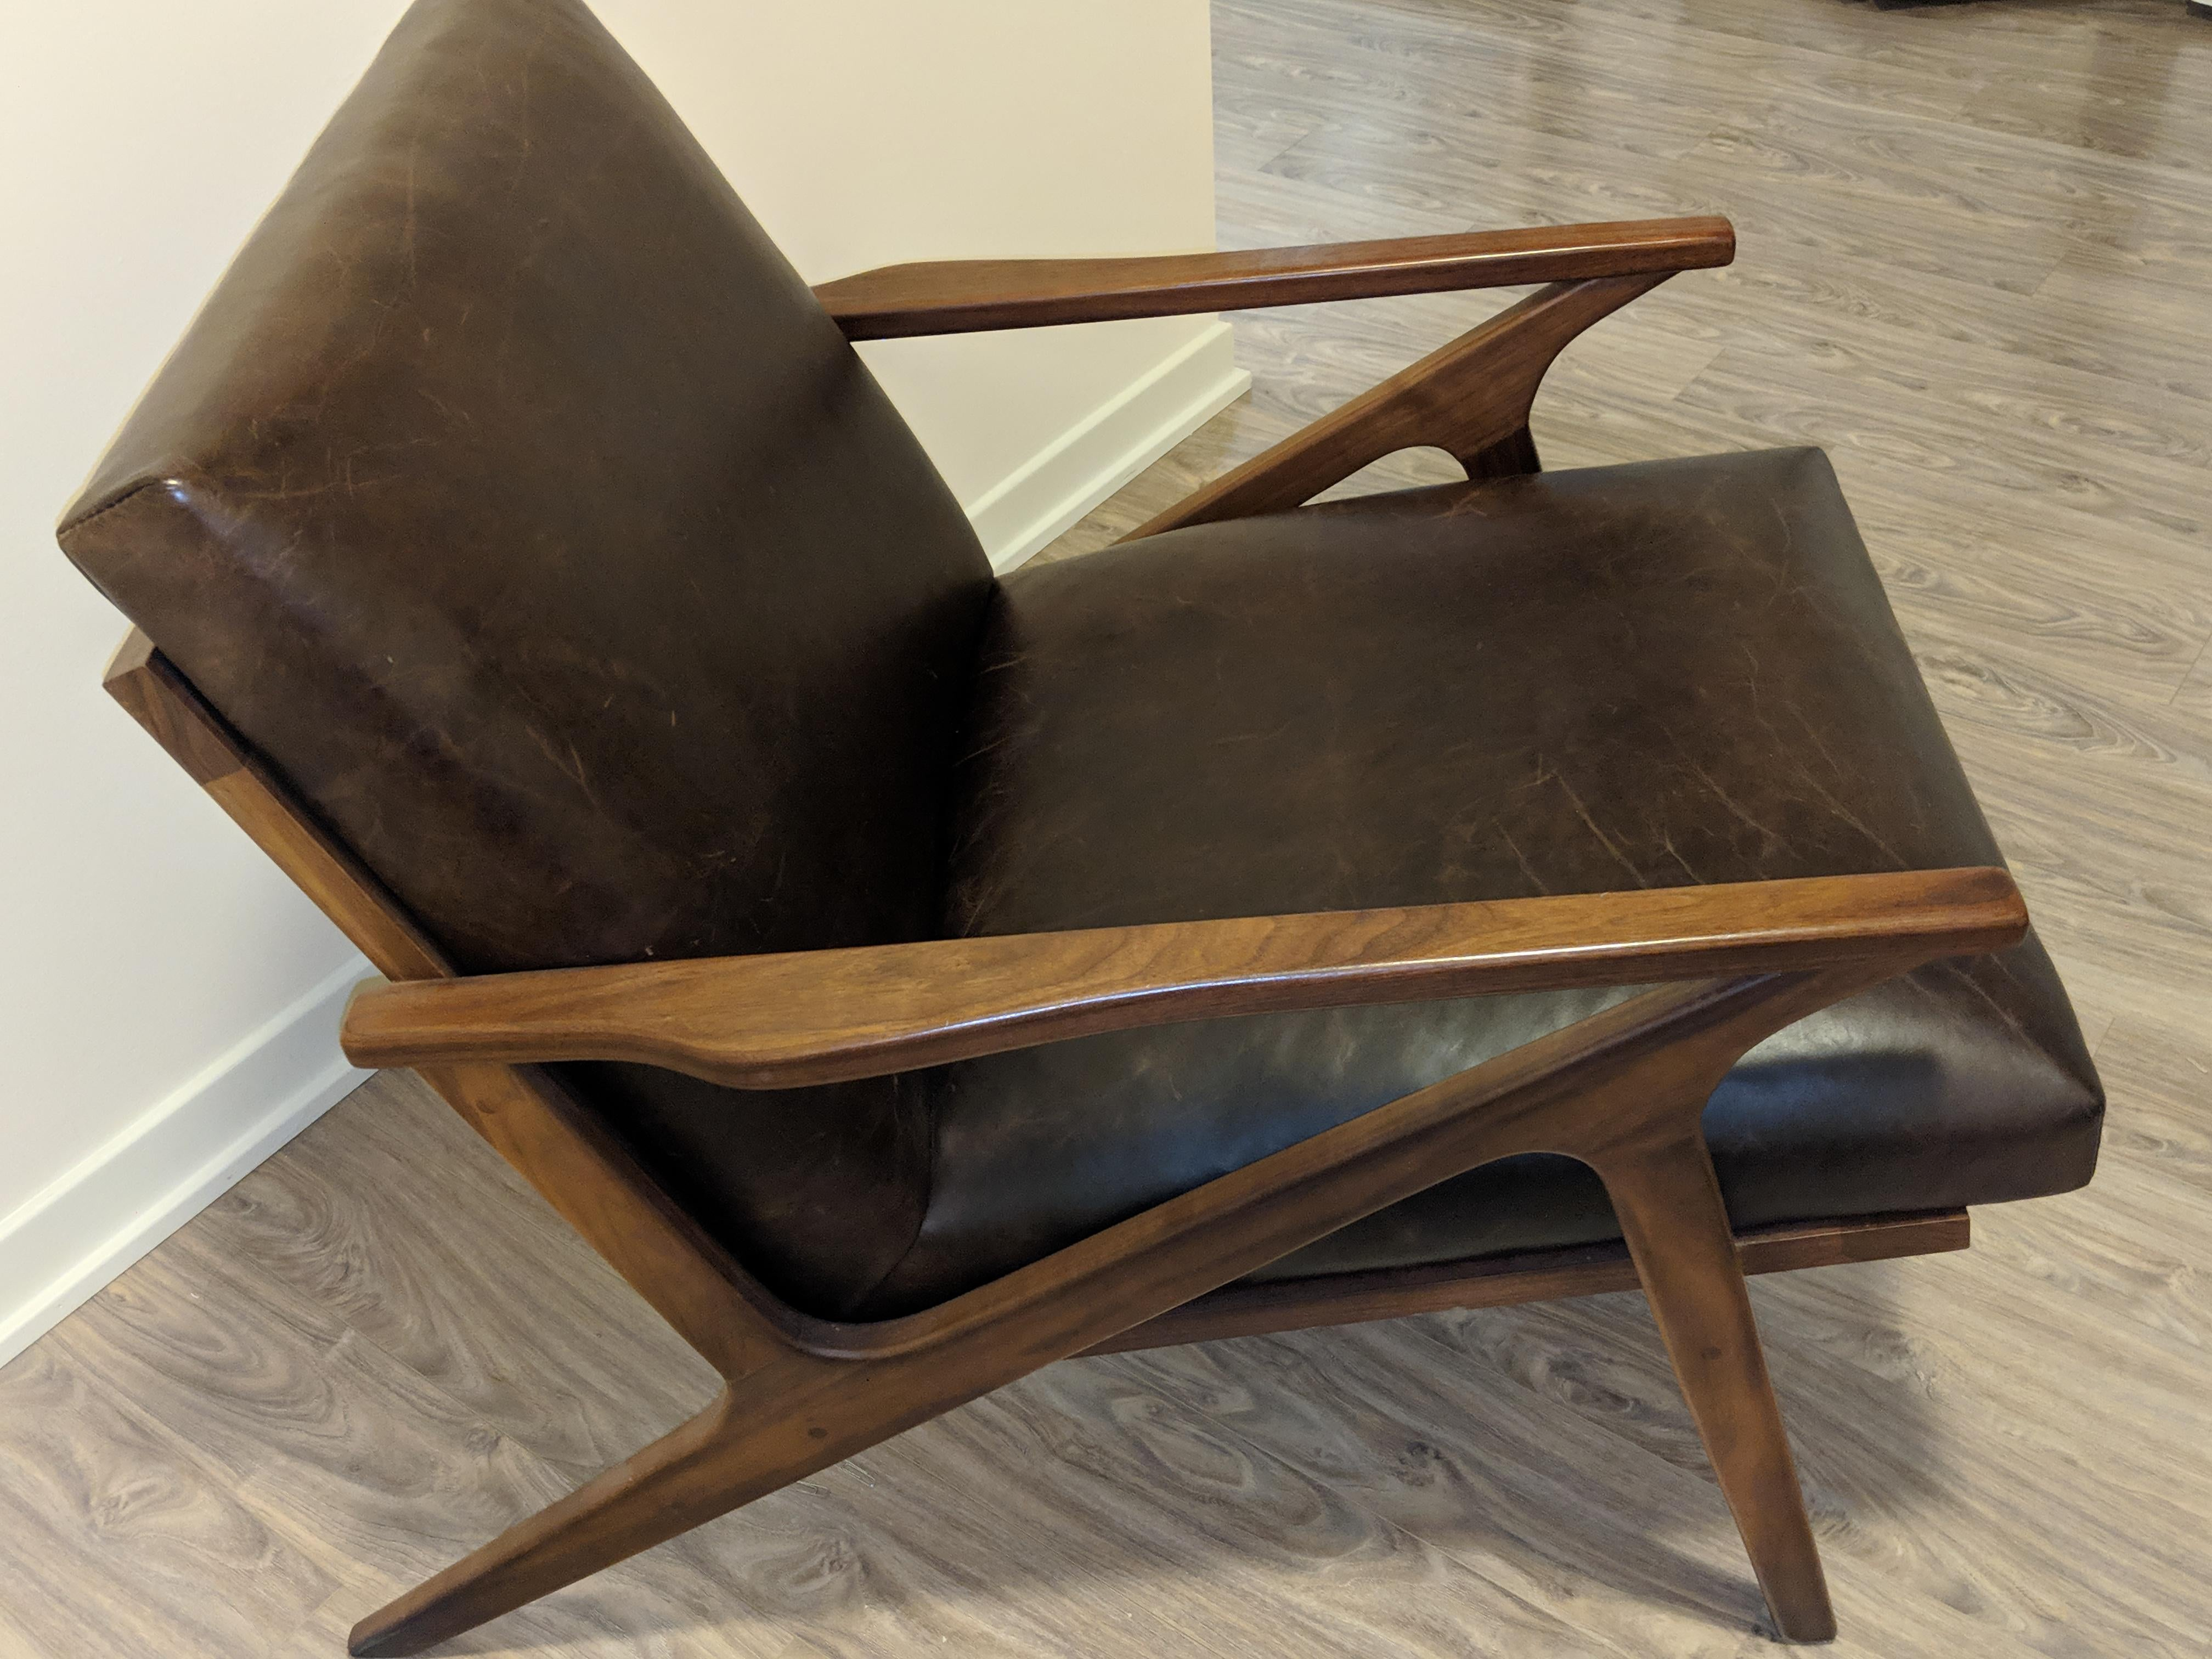 leather directors chair x1 desk crate barrel director chairish fell in love with this the first time i saw it decided to buy